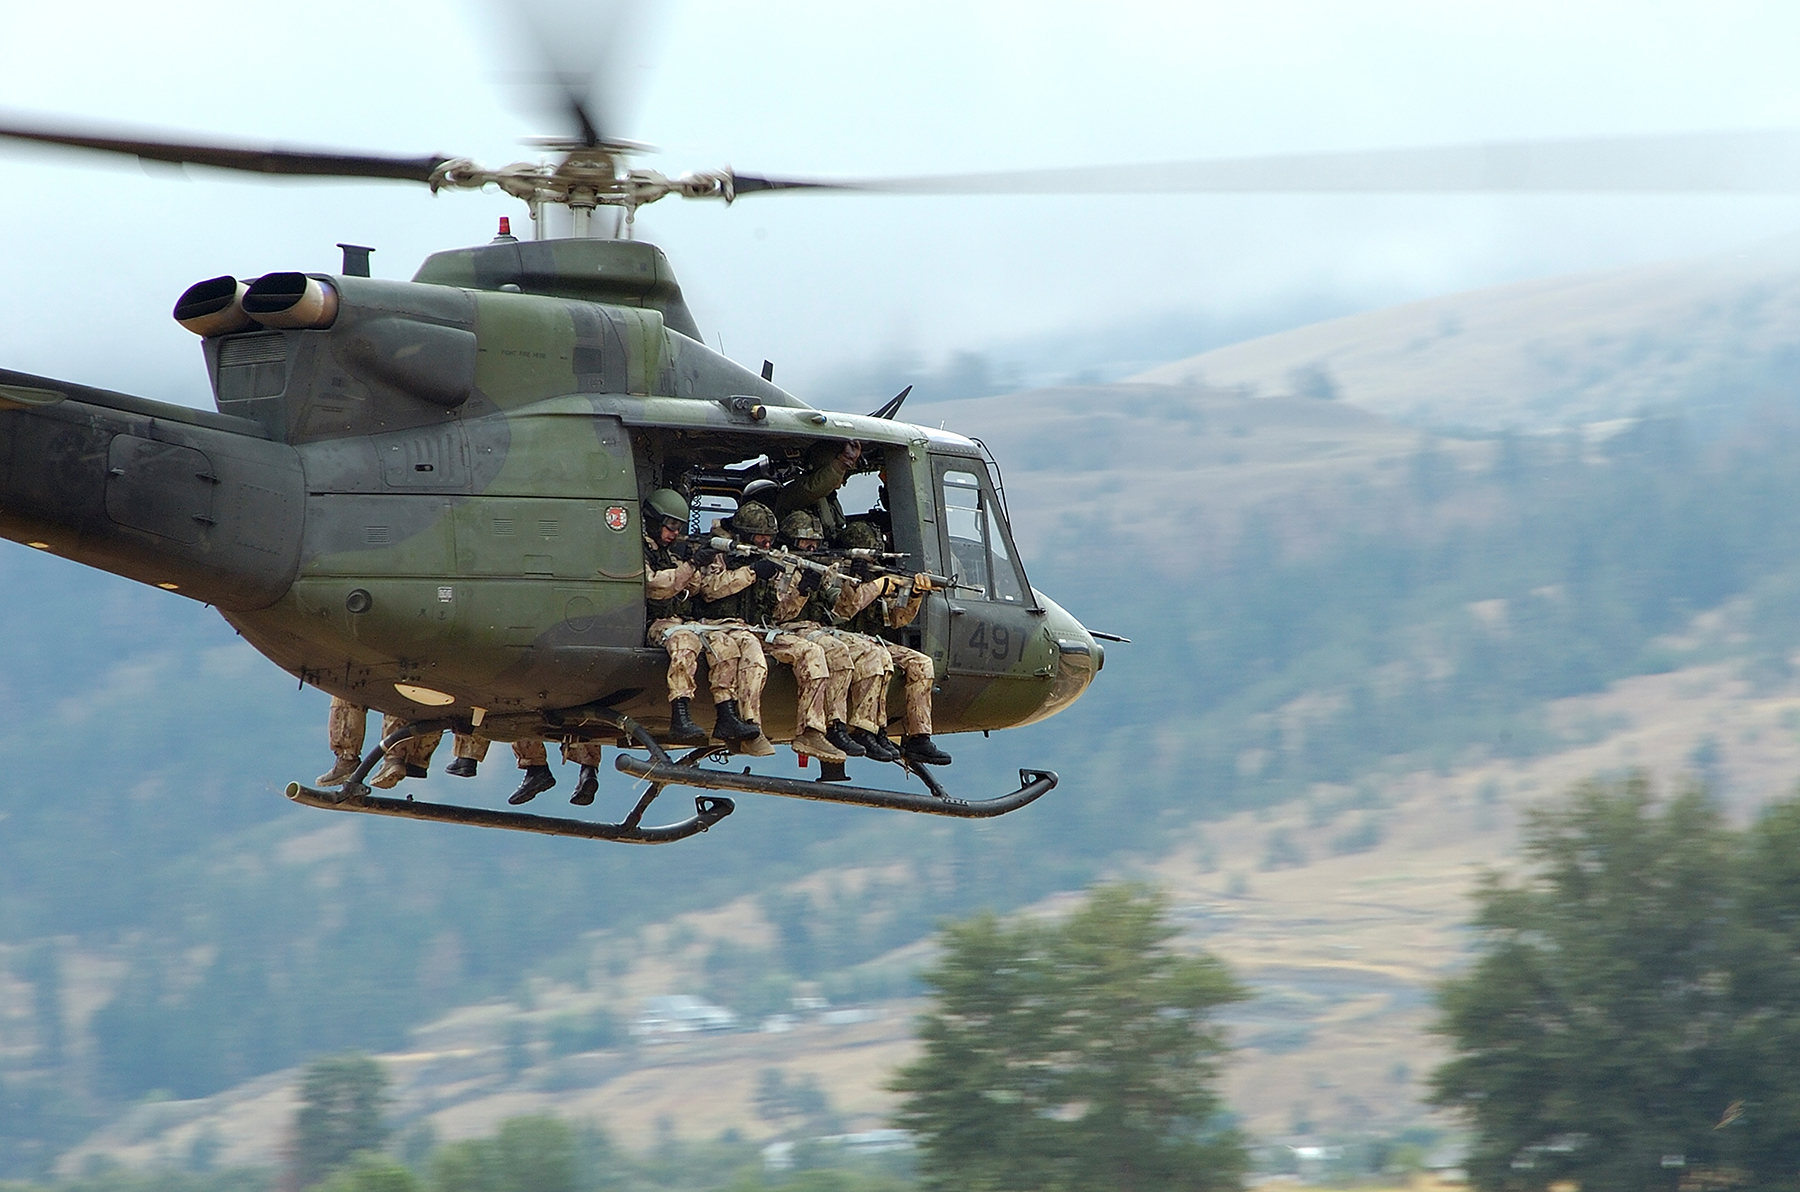 Troops from the Canadian Special Operations Regiment return to the forward operating base aboard a CH-146 Griffon helicopter from 427 Special Operations Aviation Squadron on July 20, 2006, during a training exercise near Kamloops, British Columbia. PHOTO: Sergeant Donald Clark, LW2006-5223d